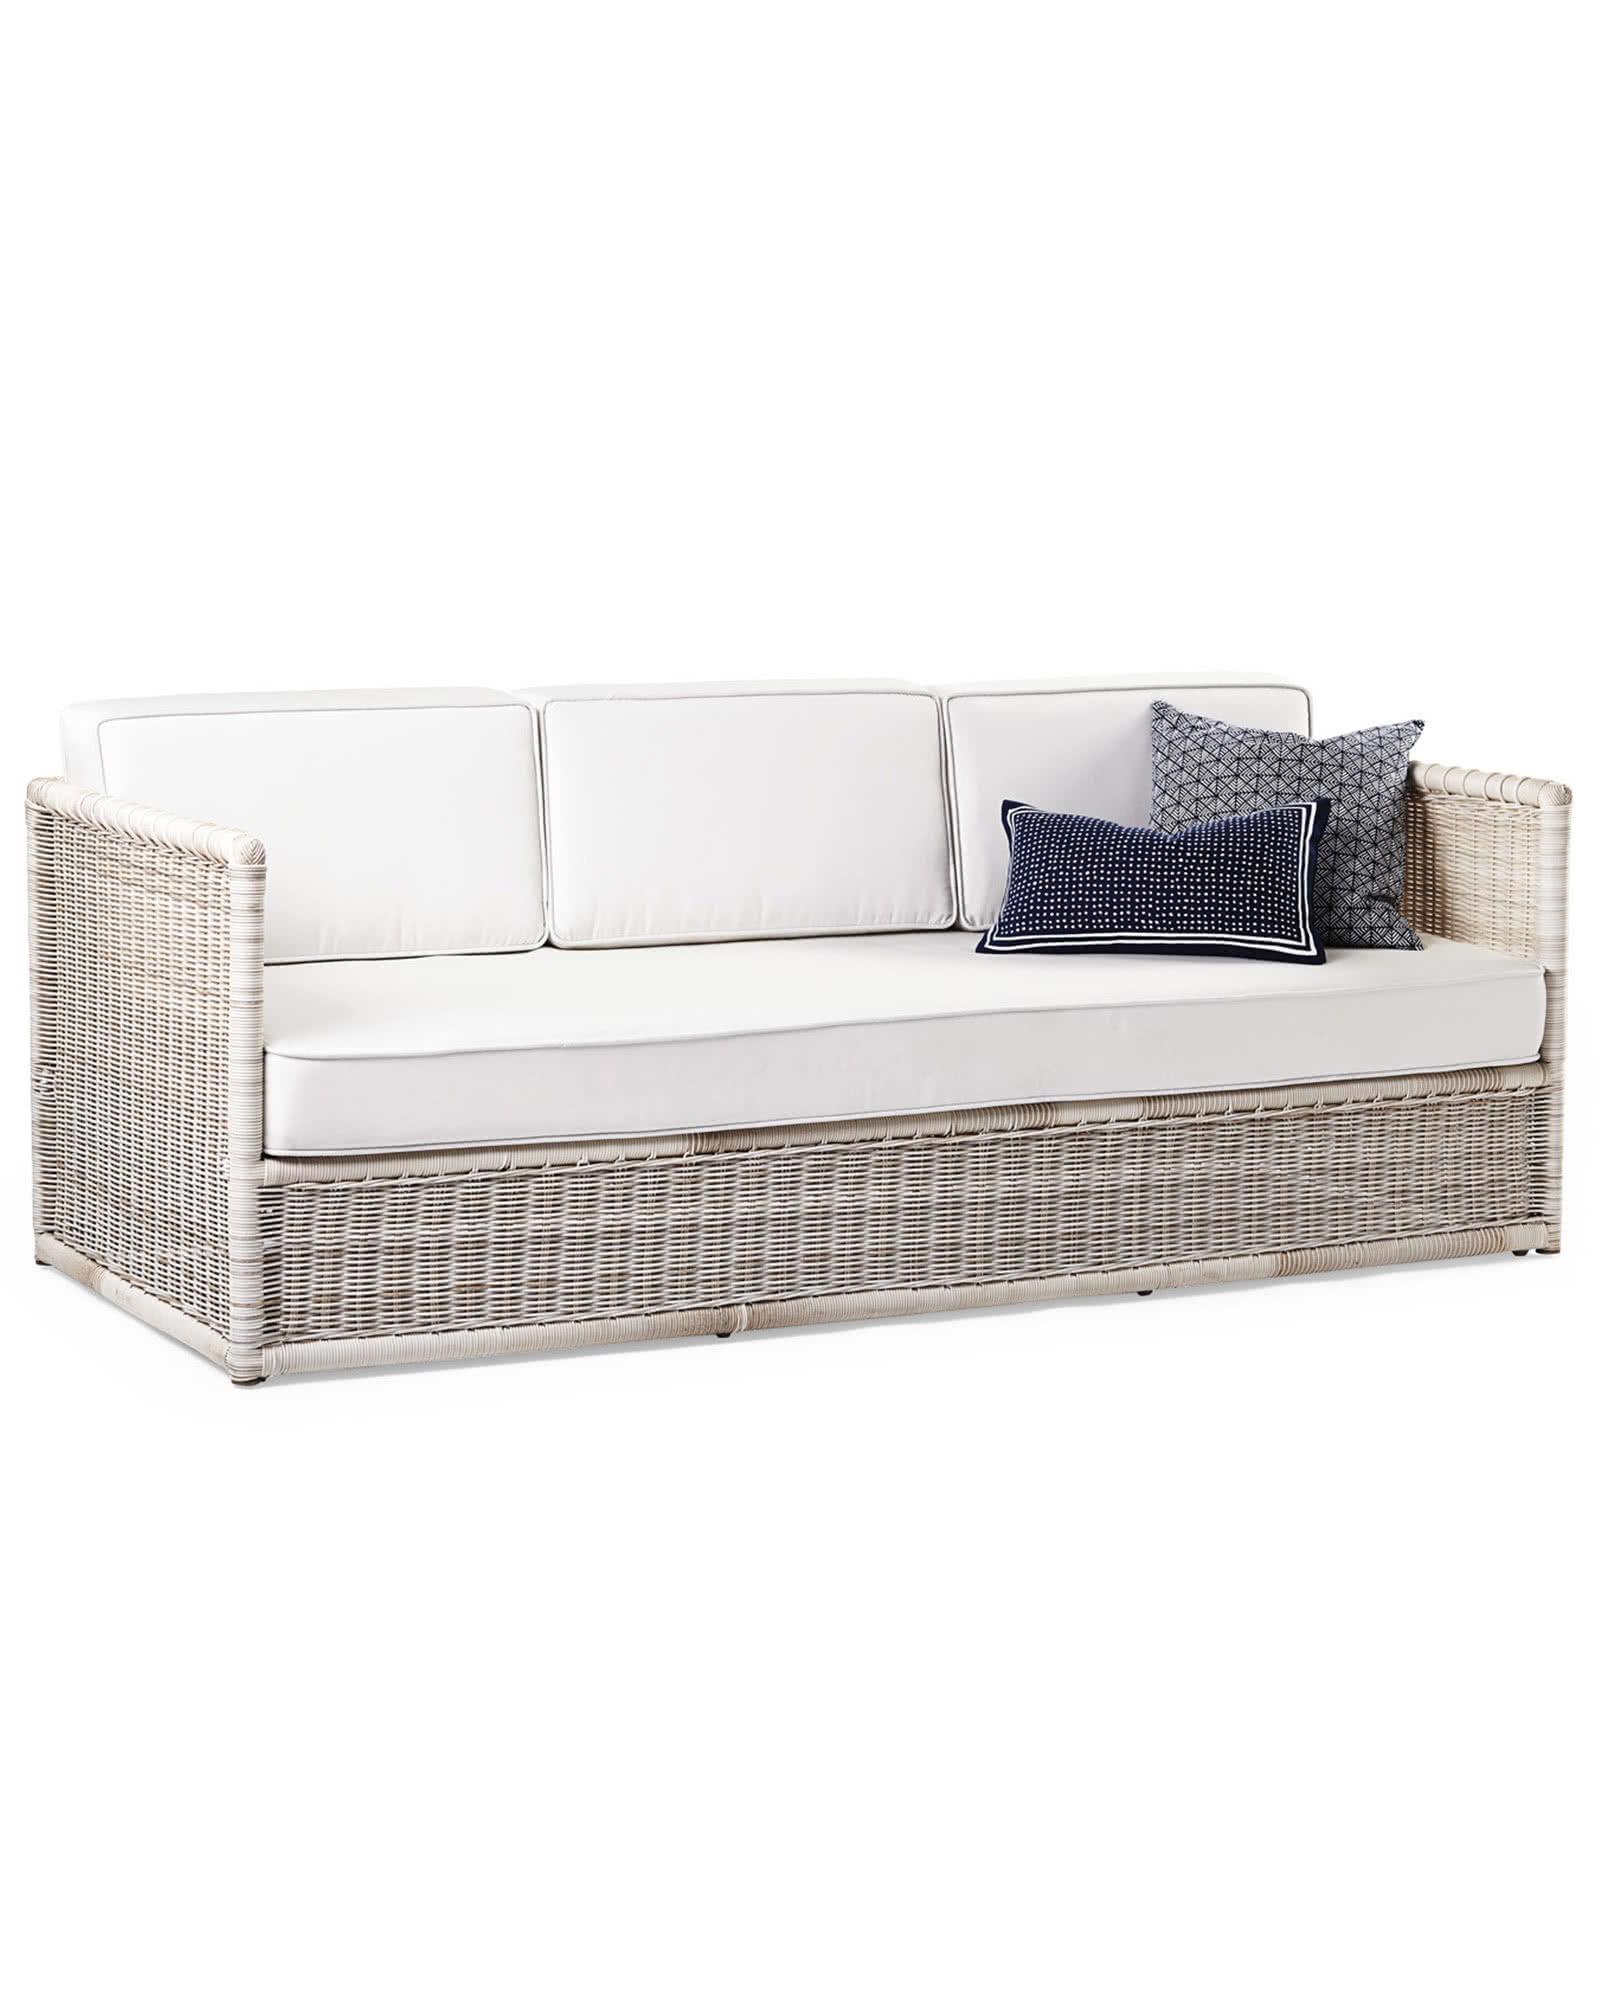 Pacifica Sofa Replacement Cushions Serena & Lily